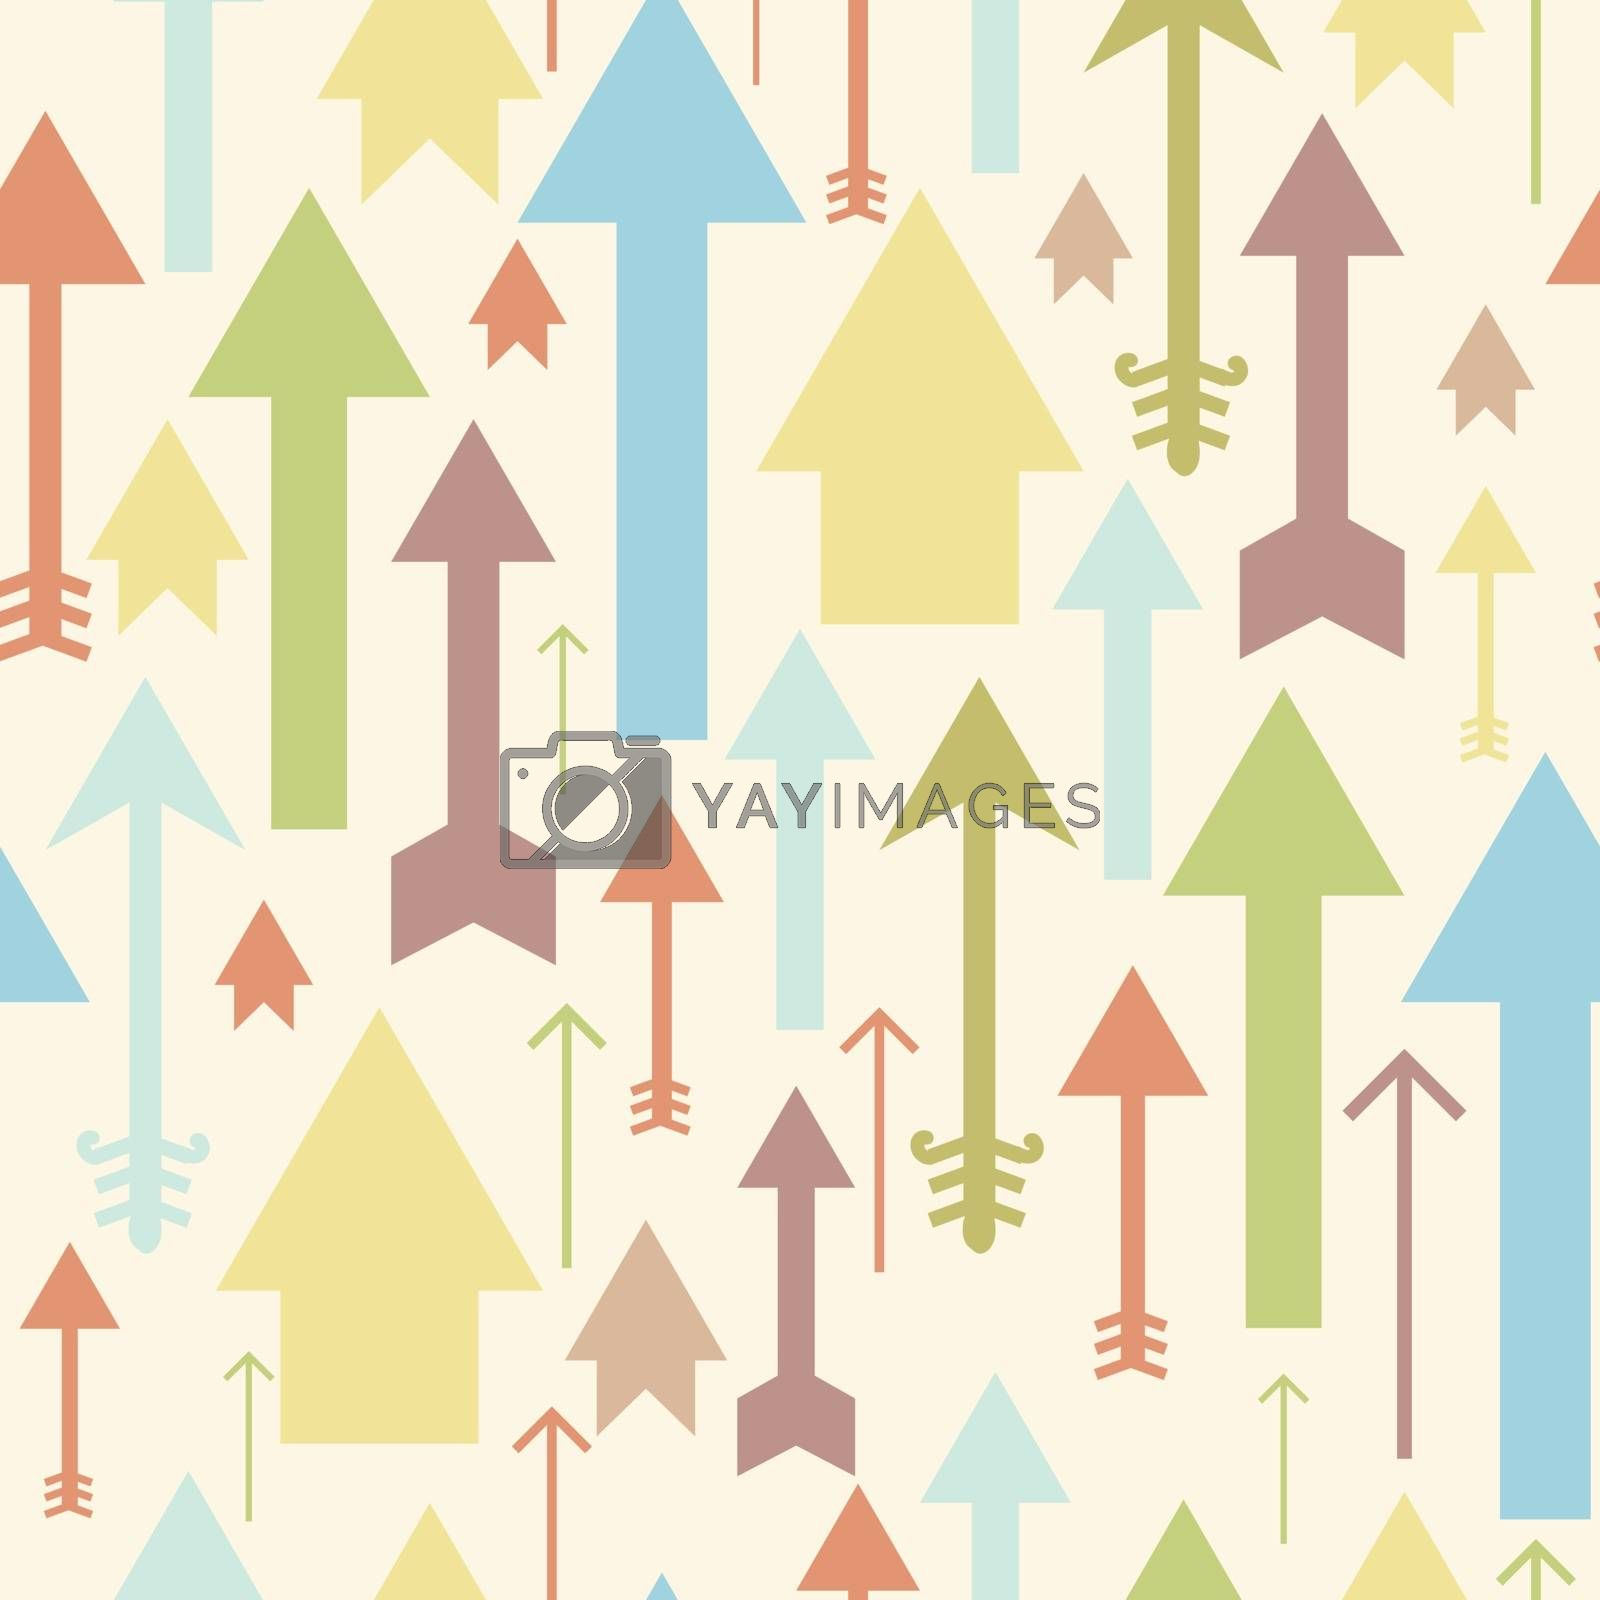 Vector arrows pointing up seamless pattern background with hand drawn elements